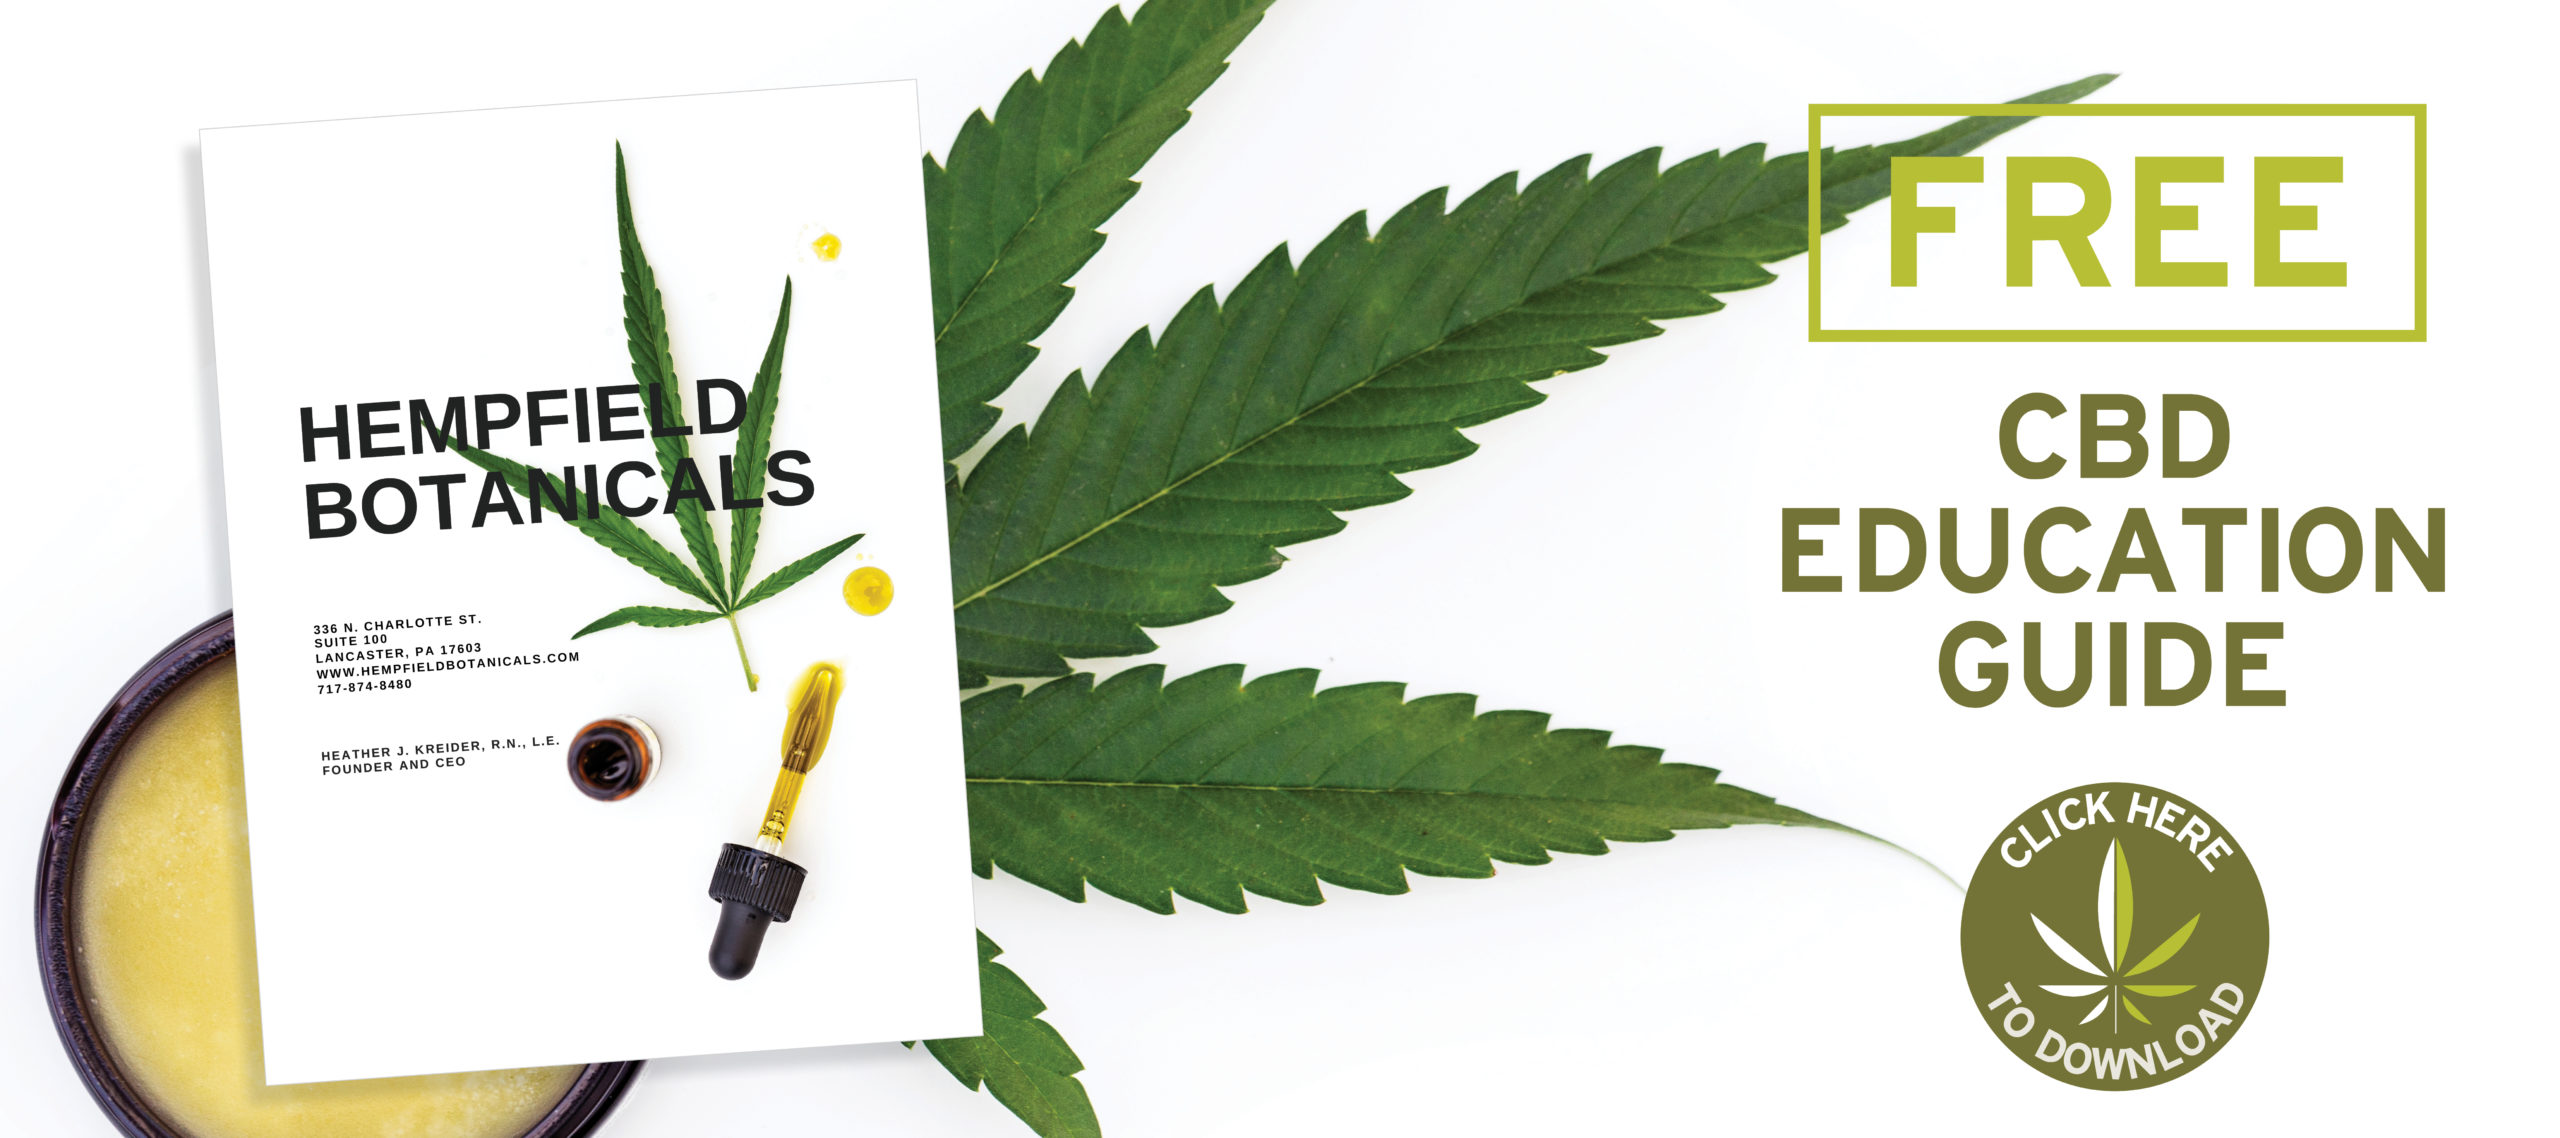 Free Downloadable CBD Guide | Hempfield Botanicals